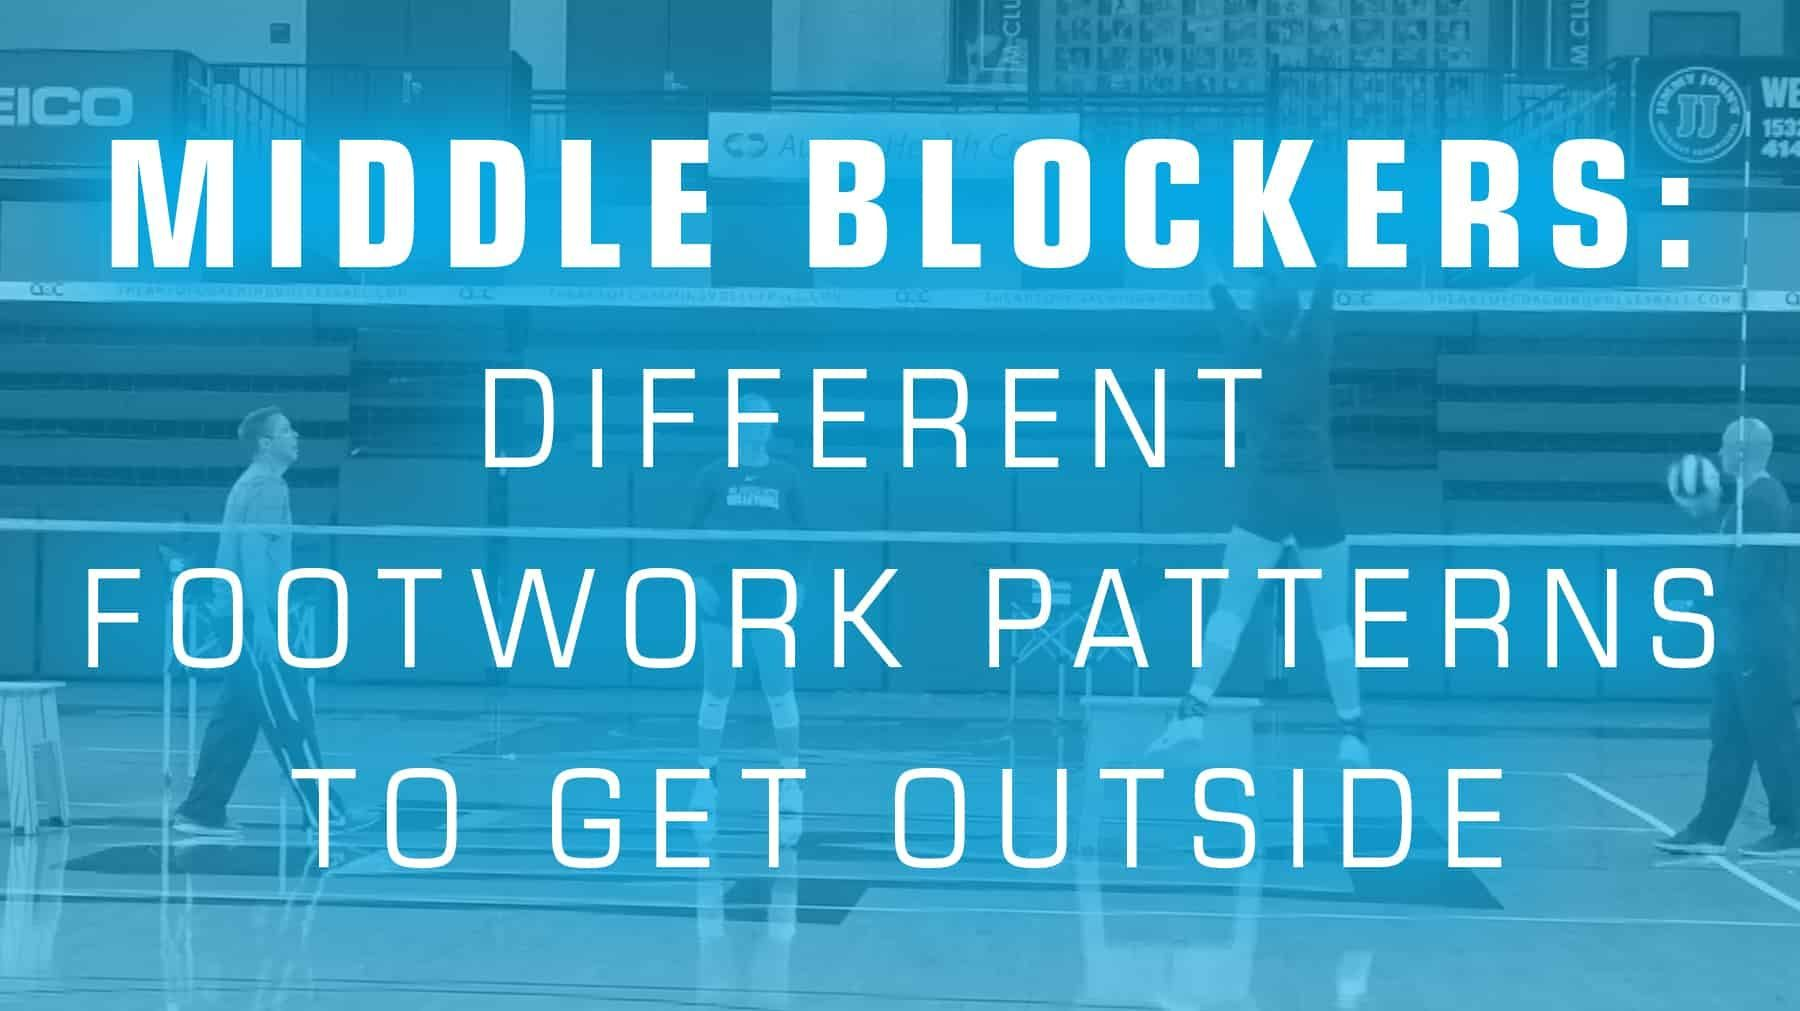 Middle Blockers Different Footwork Patterns To Get Outside Coaching Volleyball Volleyball Coaching